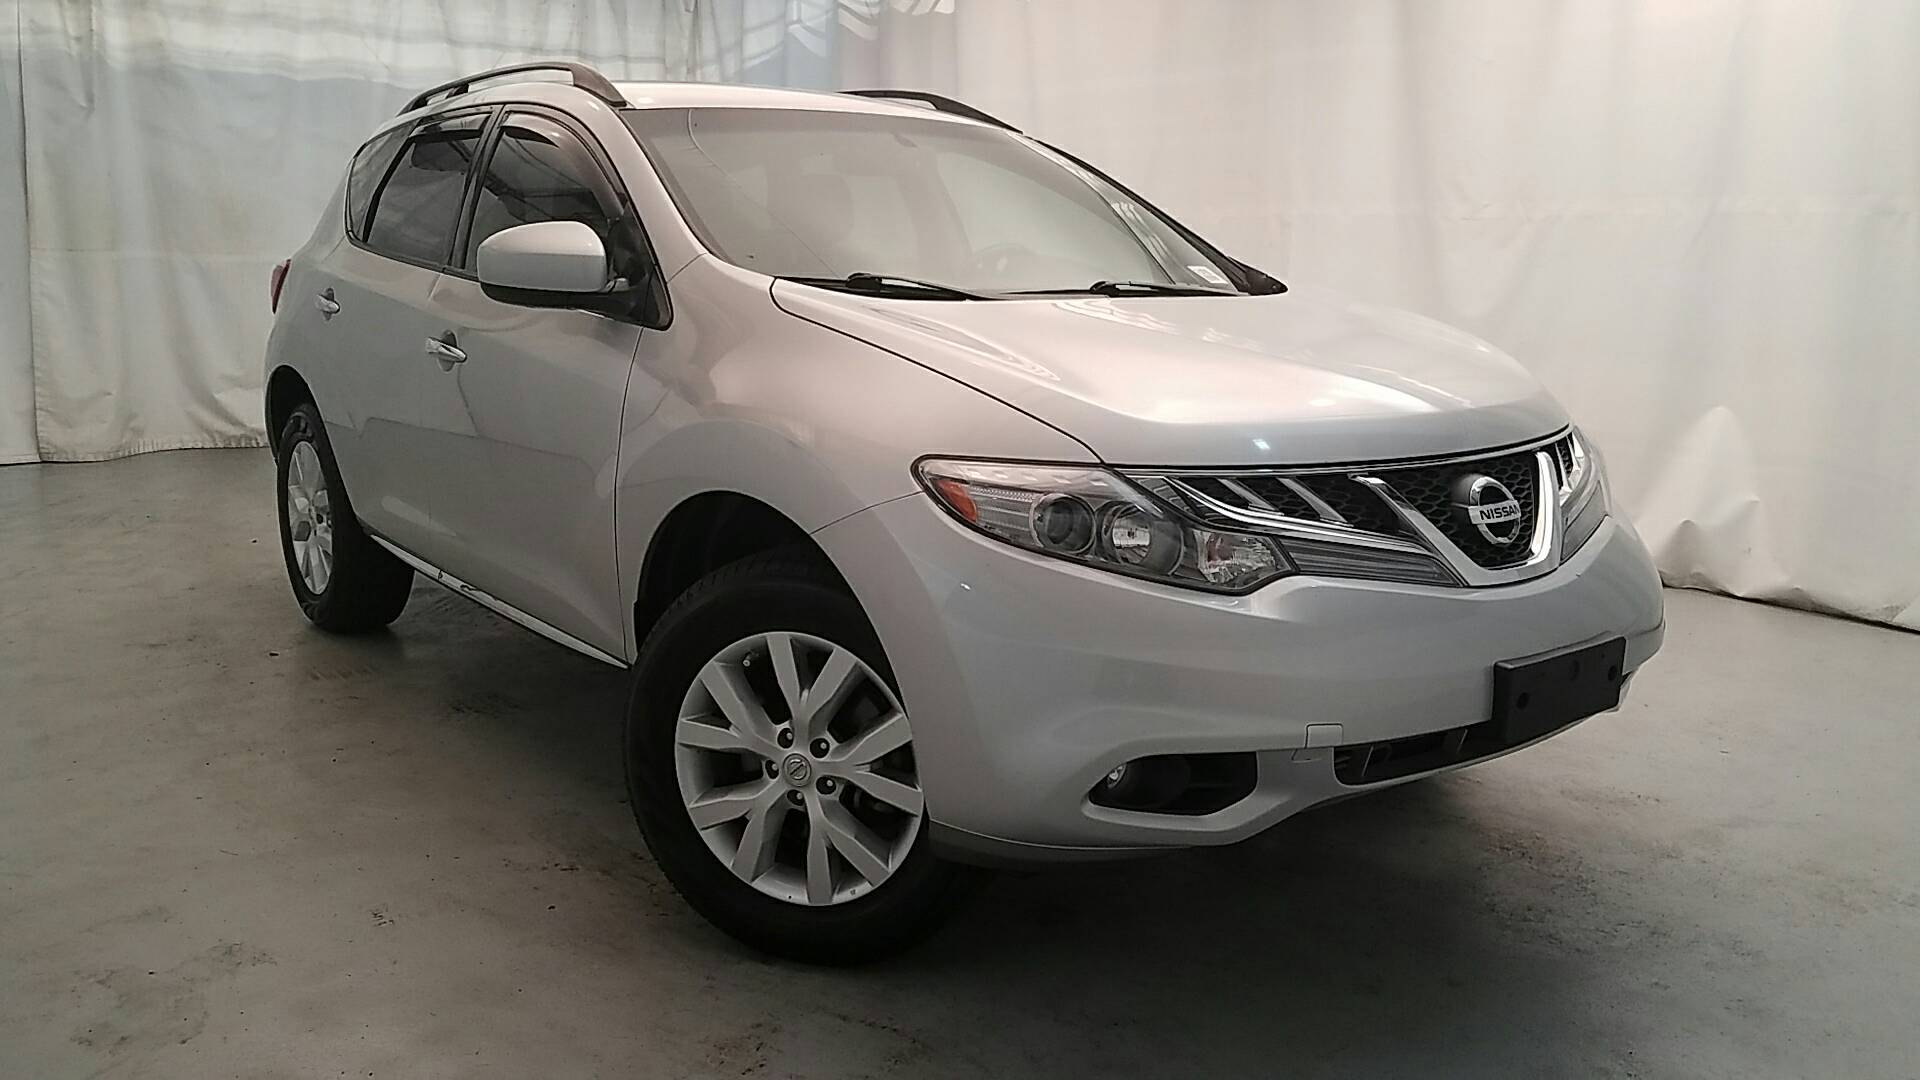 preowned vehicles for for hammond to drivers at ross downing 2013 nissan murano vehicle photo in hammond la 70403